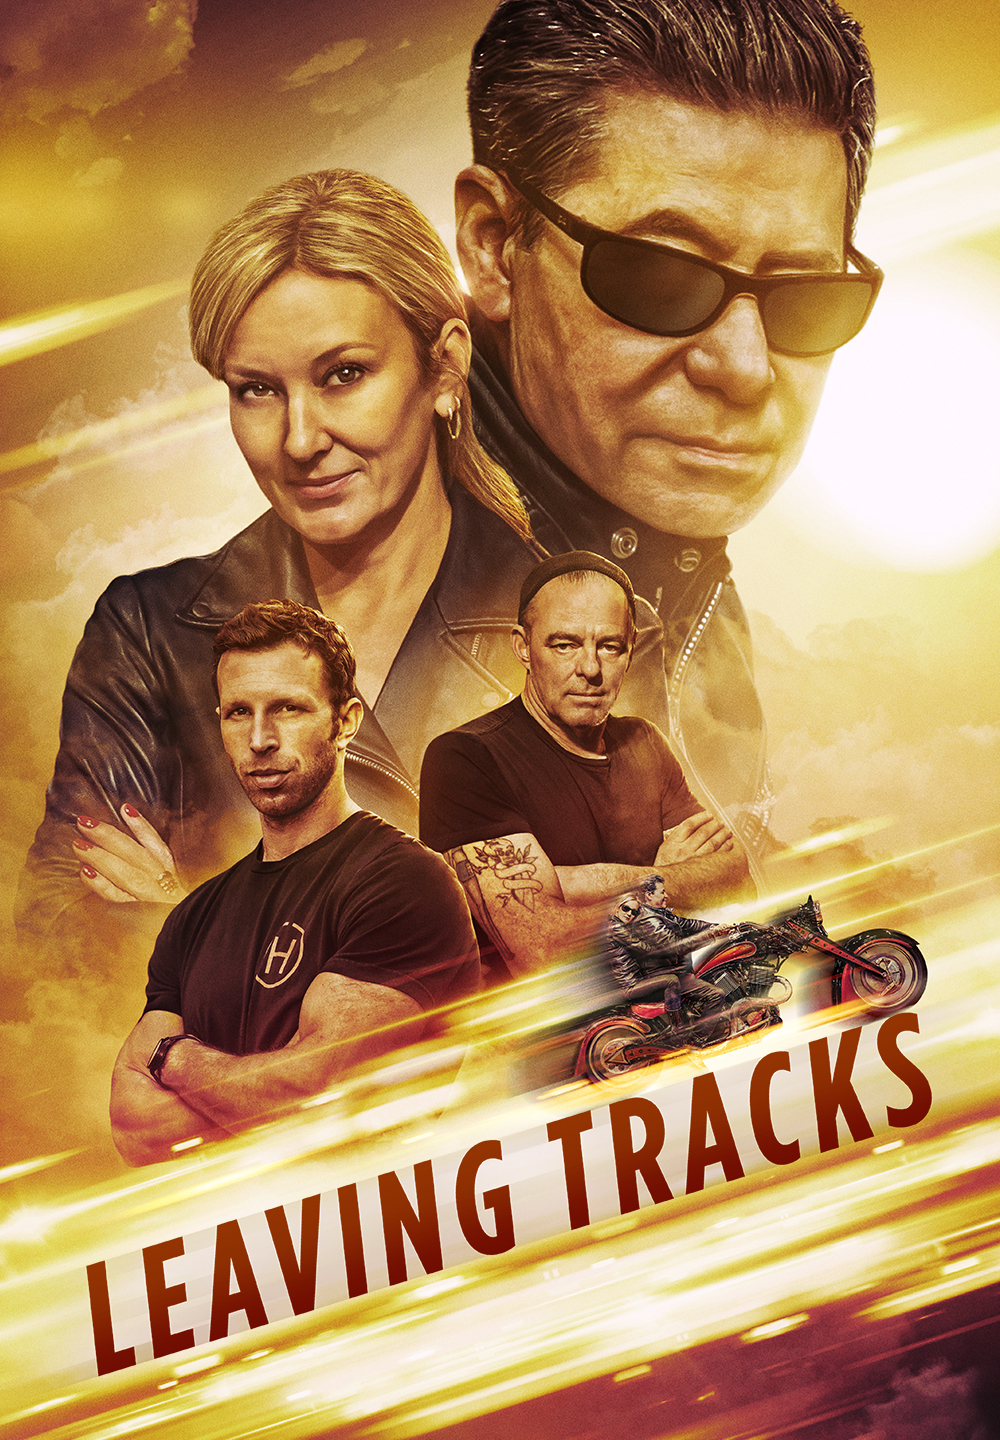 watch Leaving Tracks on soap2day